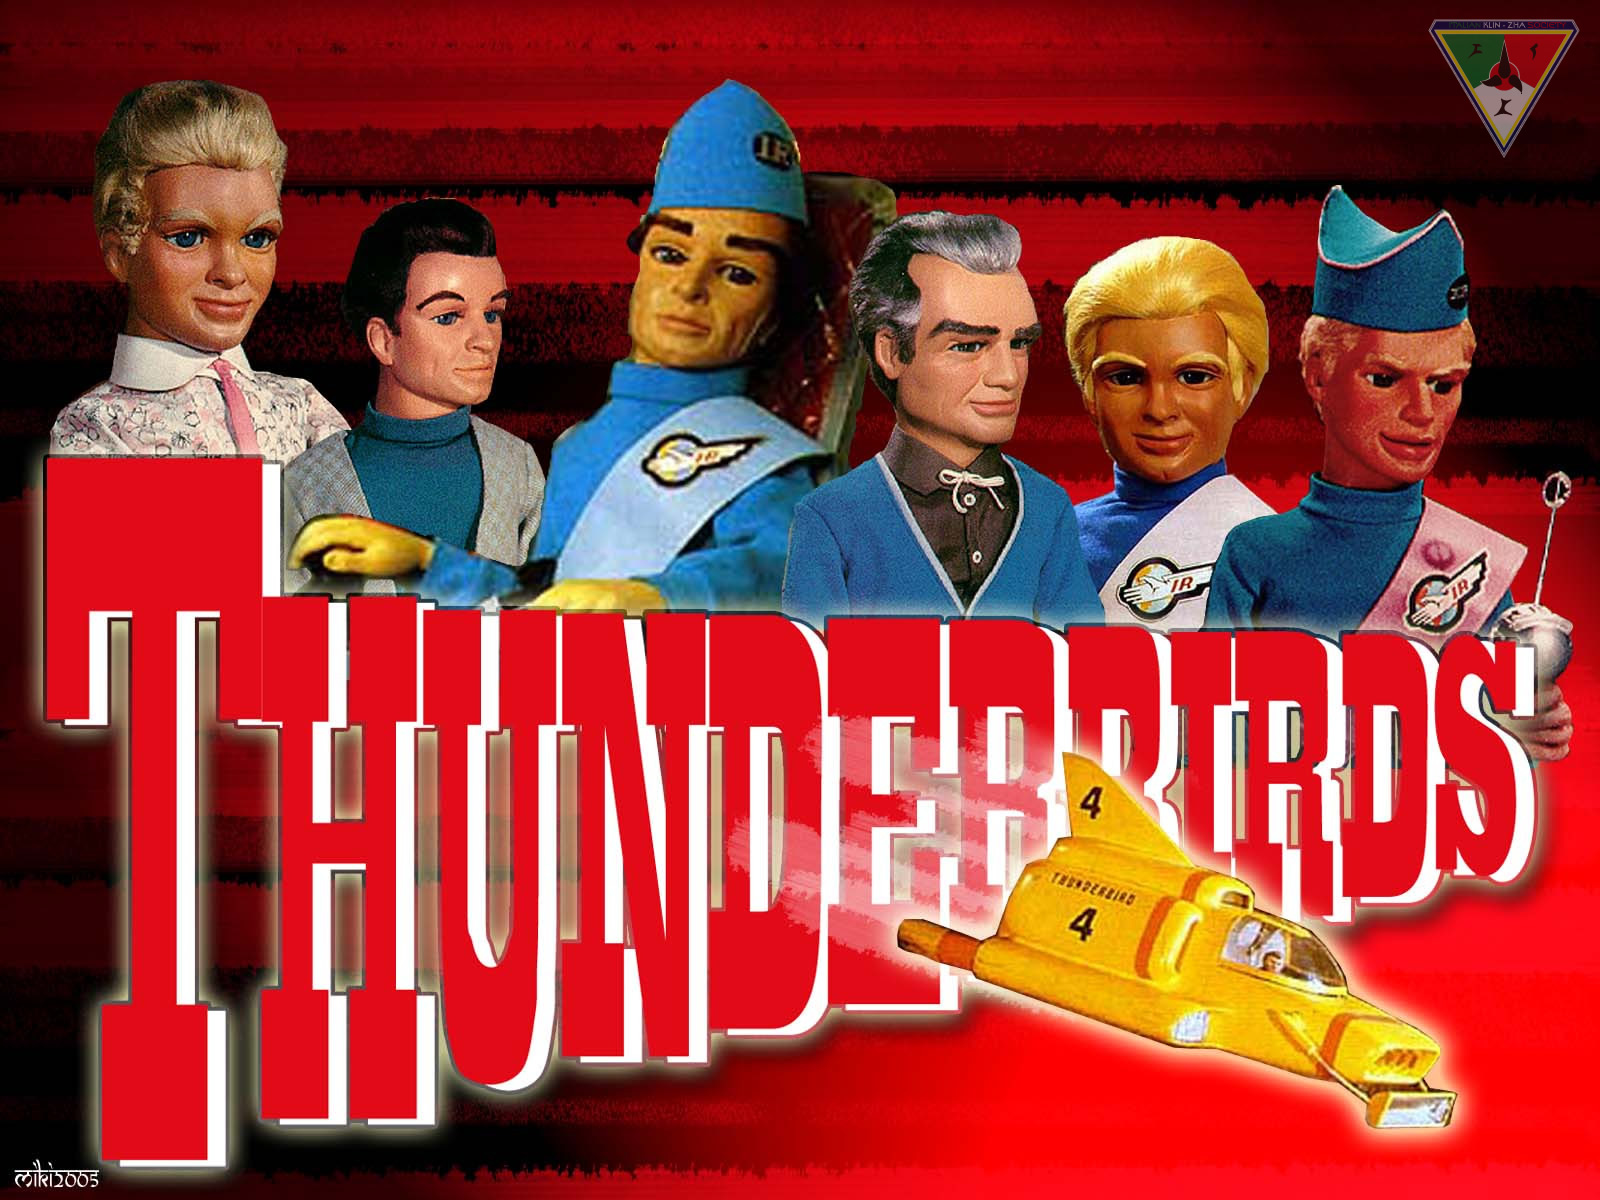 thunderbirds serie tv sigla